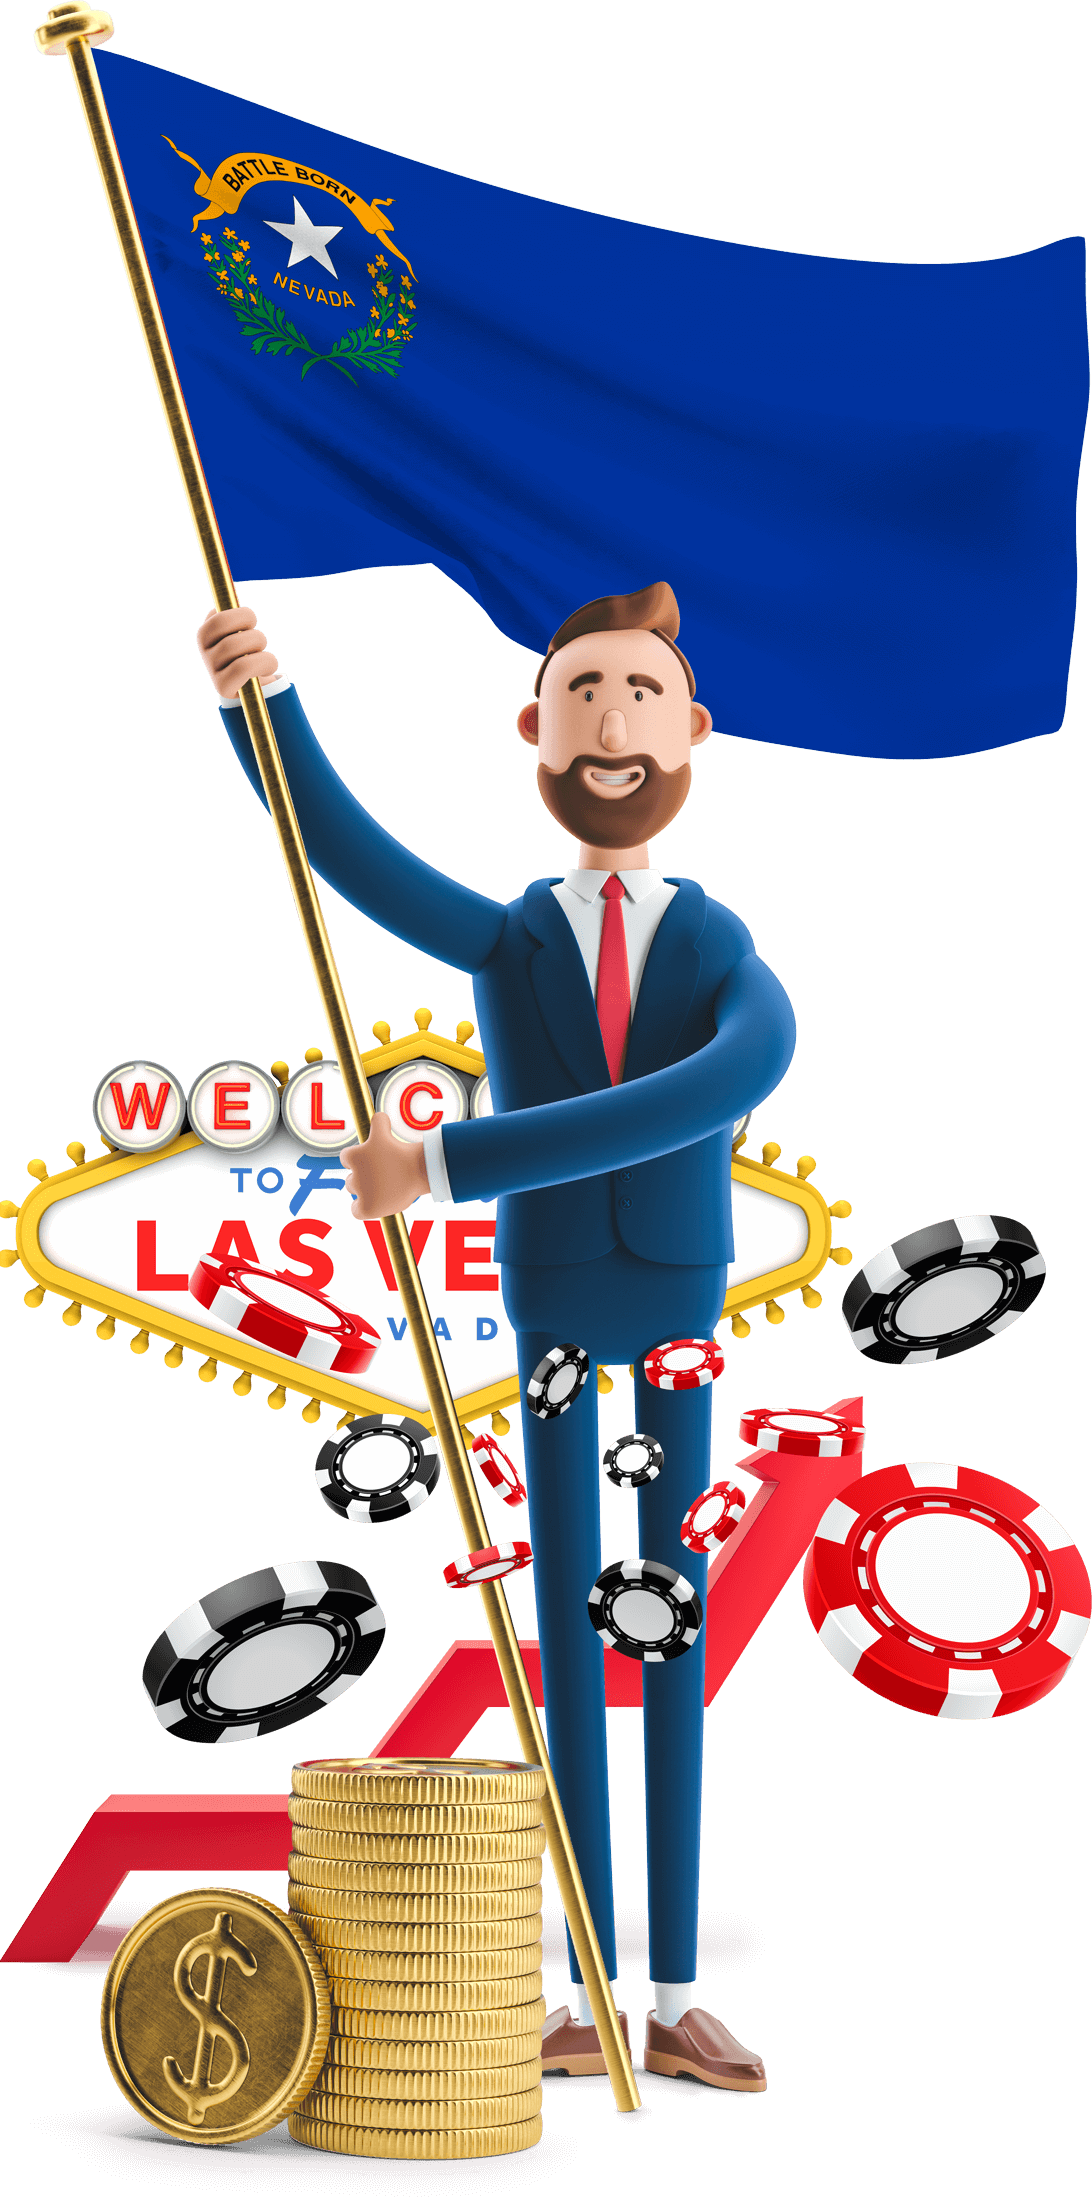 Nevada flag held by MetCredit USA businessman who's standing in front of the Welcome to Las Vegas sign with giant poker chips hovering around